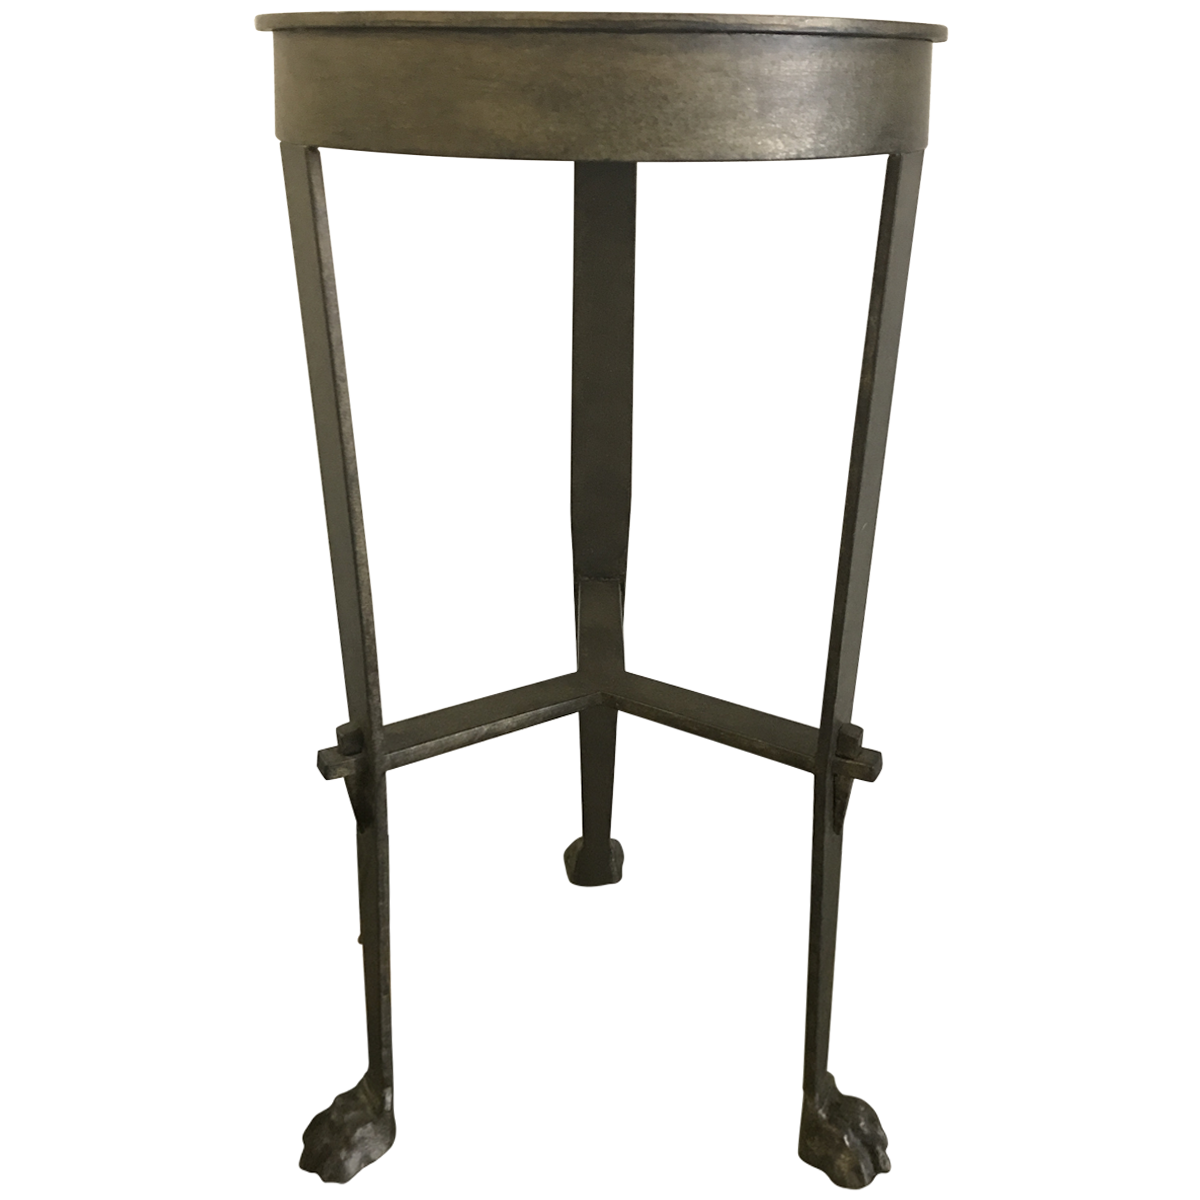 tables pedestal side table nesting pier one slim end mosaic accent wrought iron small black white distressed wood coffee oval dining tall thin buffet sideboard counter height